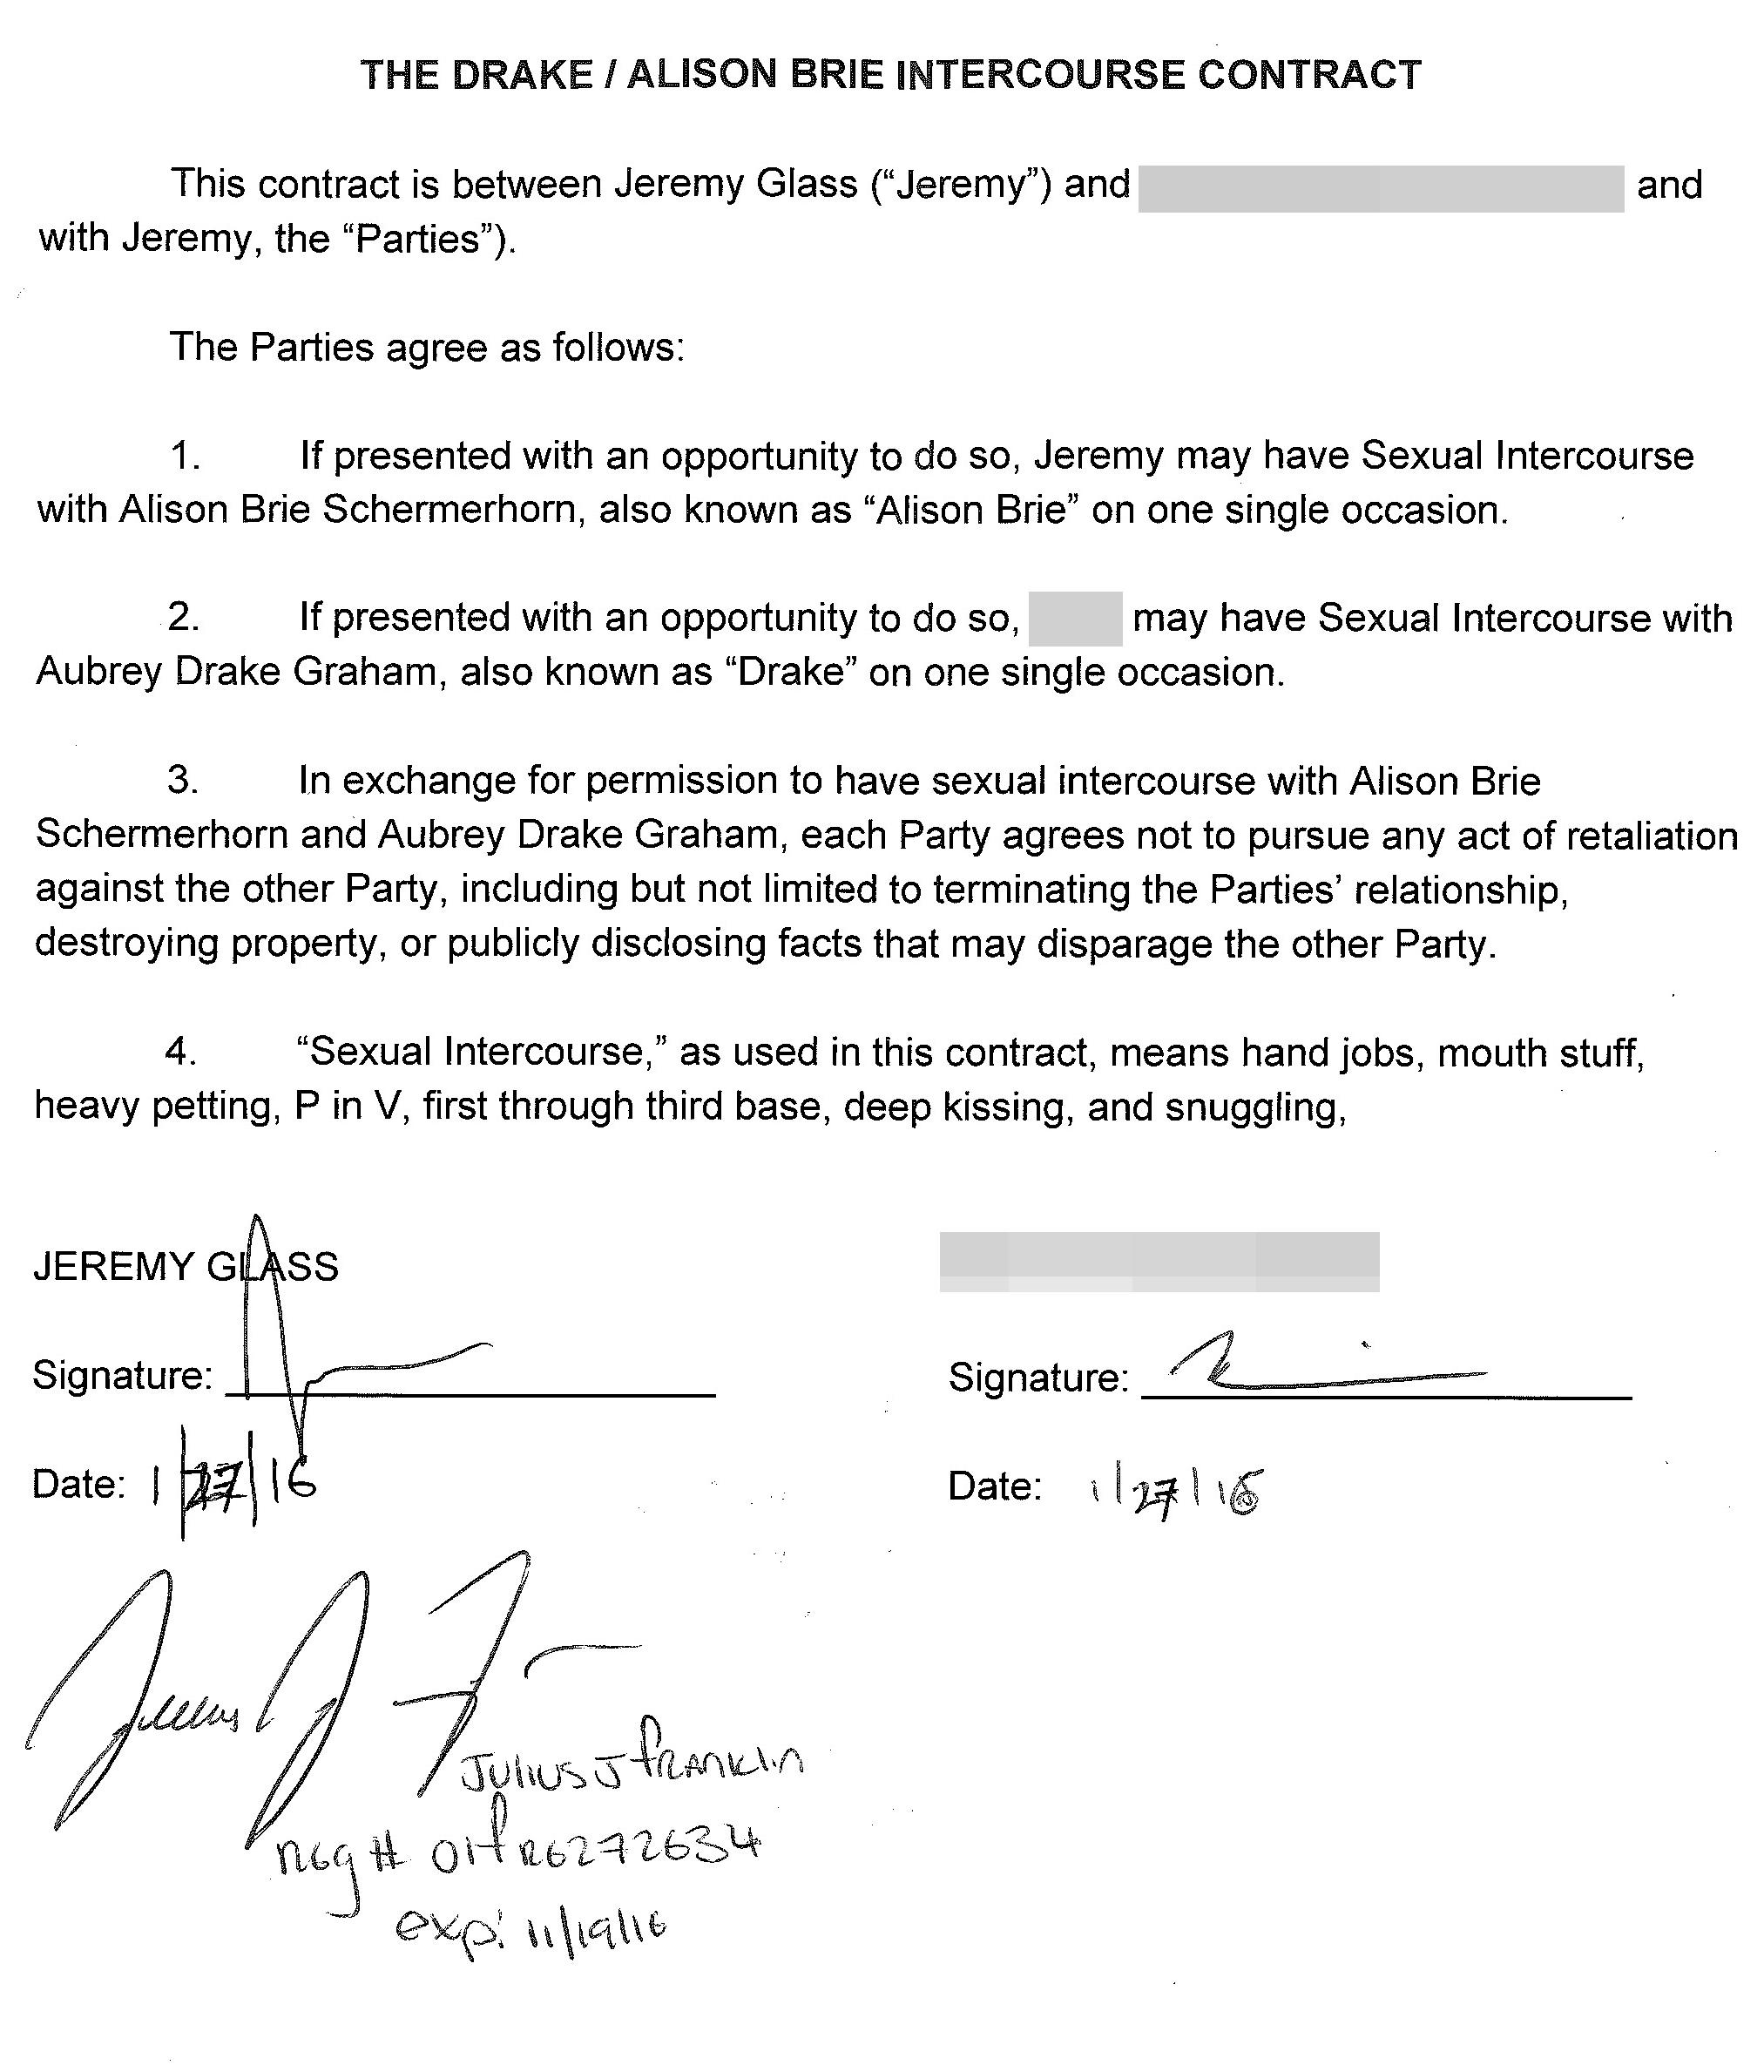 My Girlfriend And I Signed A Sex Contract With Drake Thrillist